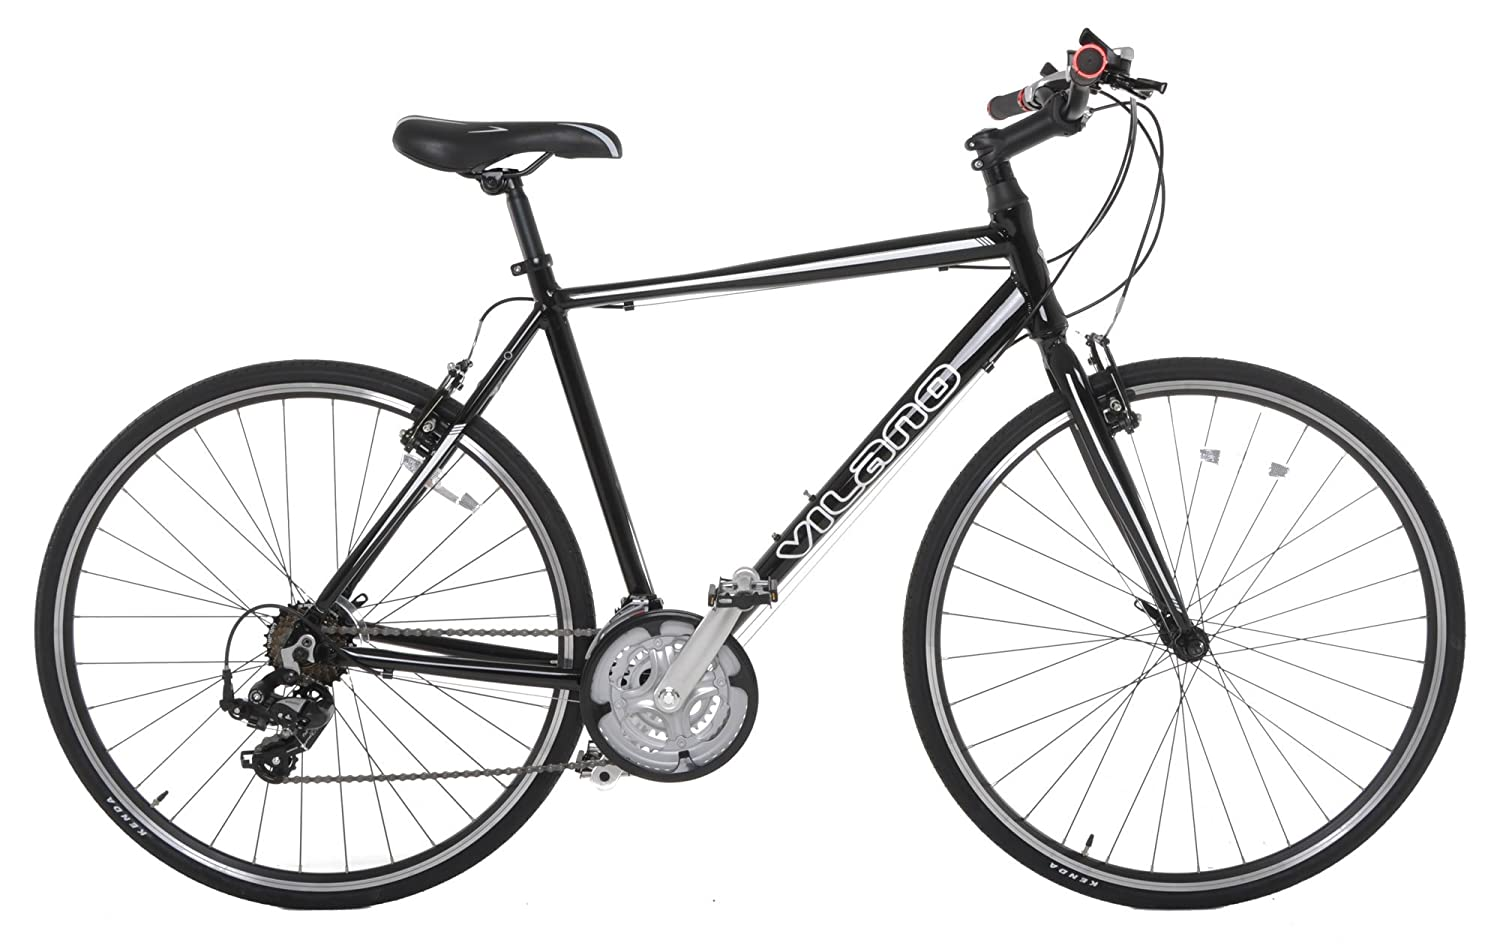 Best Hybrid Bikes Reviews The Vilano performance hybrid